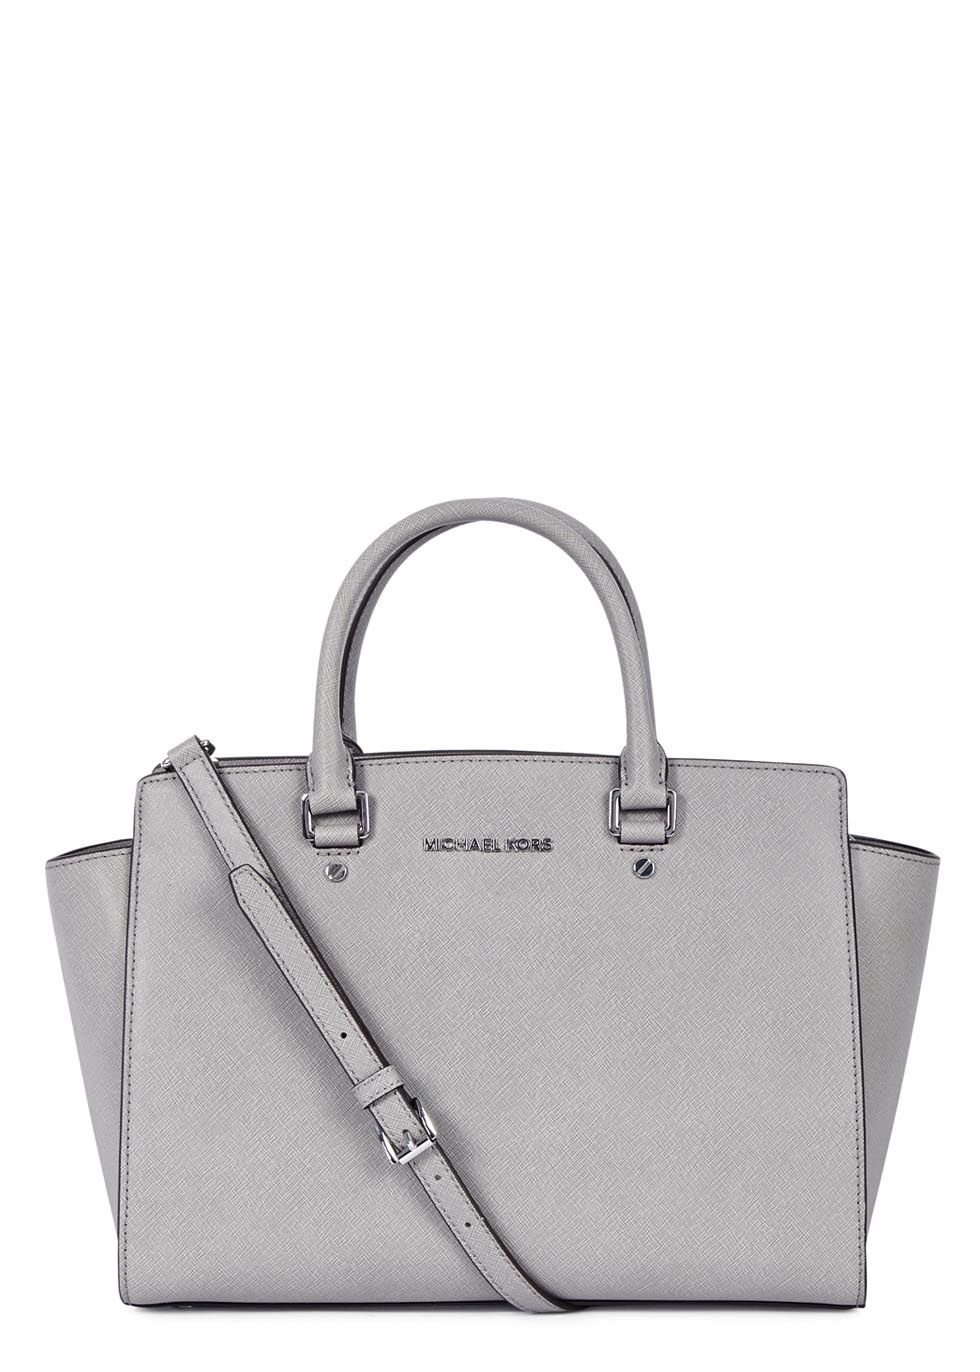 19dd3e6c8503 Michael Kors light grey saffiano leather tote Two top handles, detachable  adjustable shoulder strap, designer plaque, silver hardware, internal  zipped ...